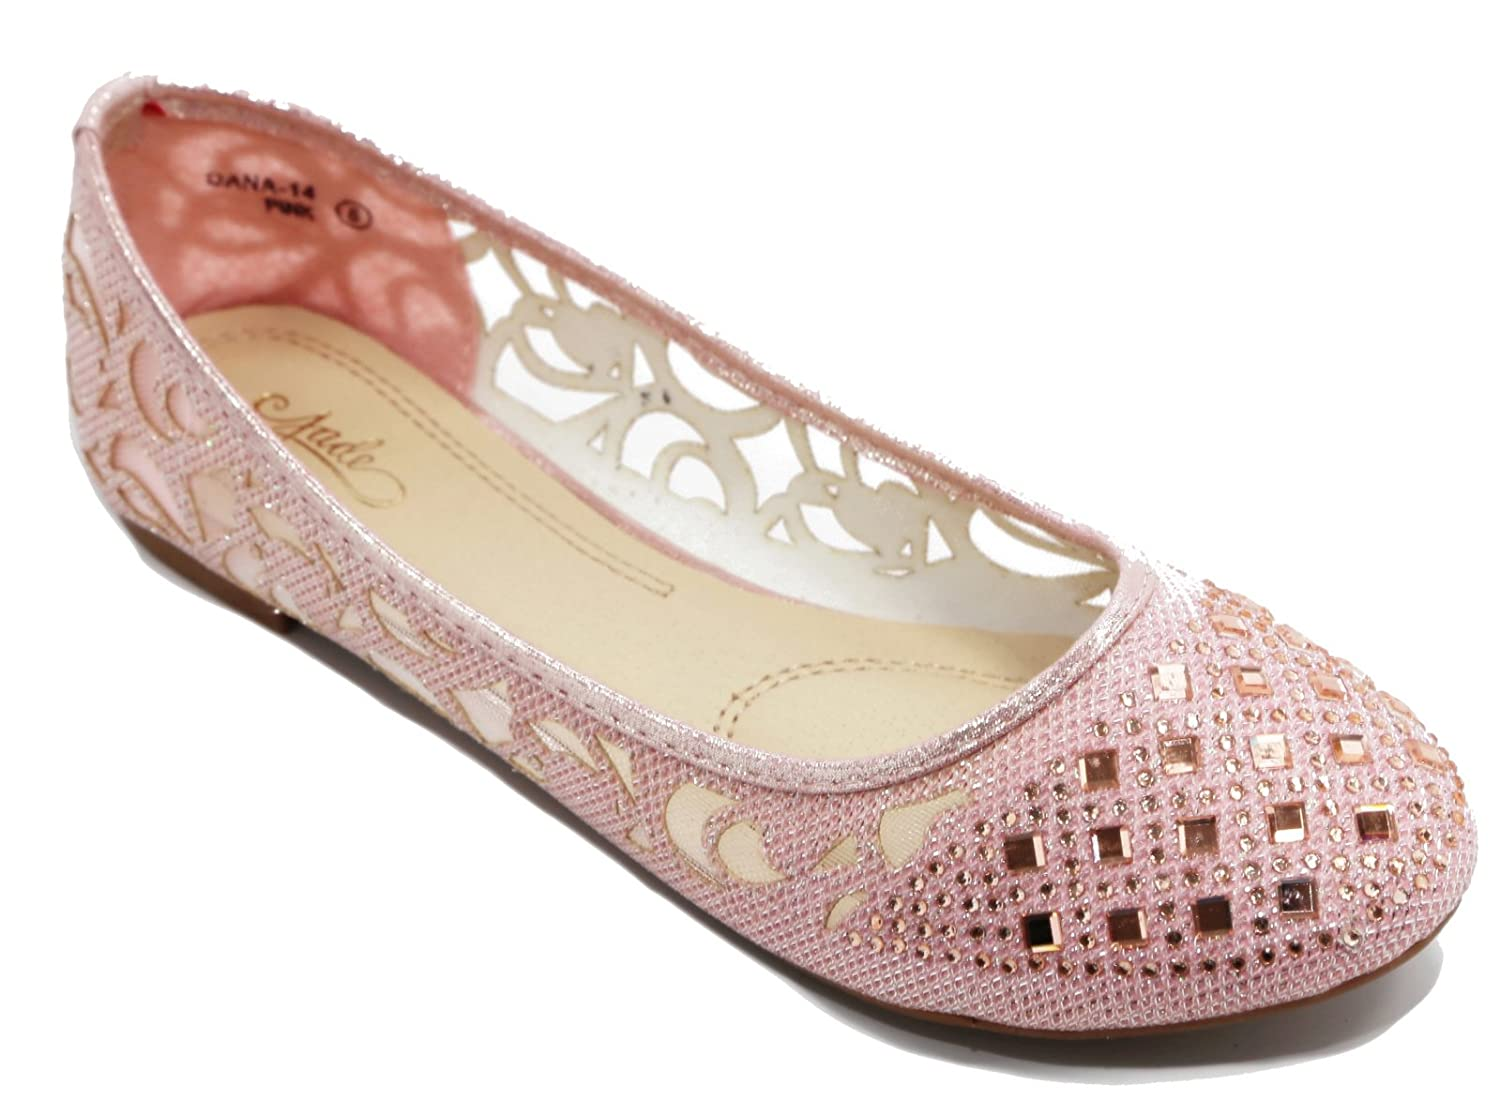 Walstar Women Rhinestone Flats Shoes Glitter Mesh Ballet Flats Slip on Flat Shoes B010TZKAF0 9 B(M) US|Pink